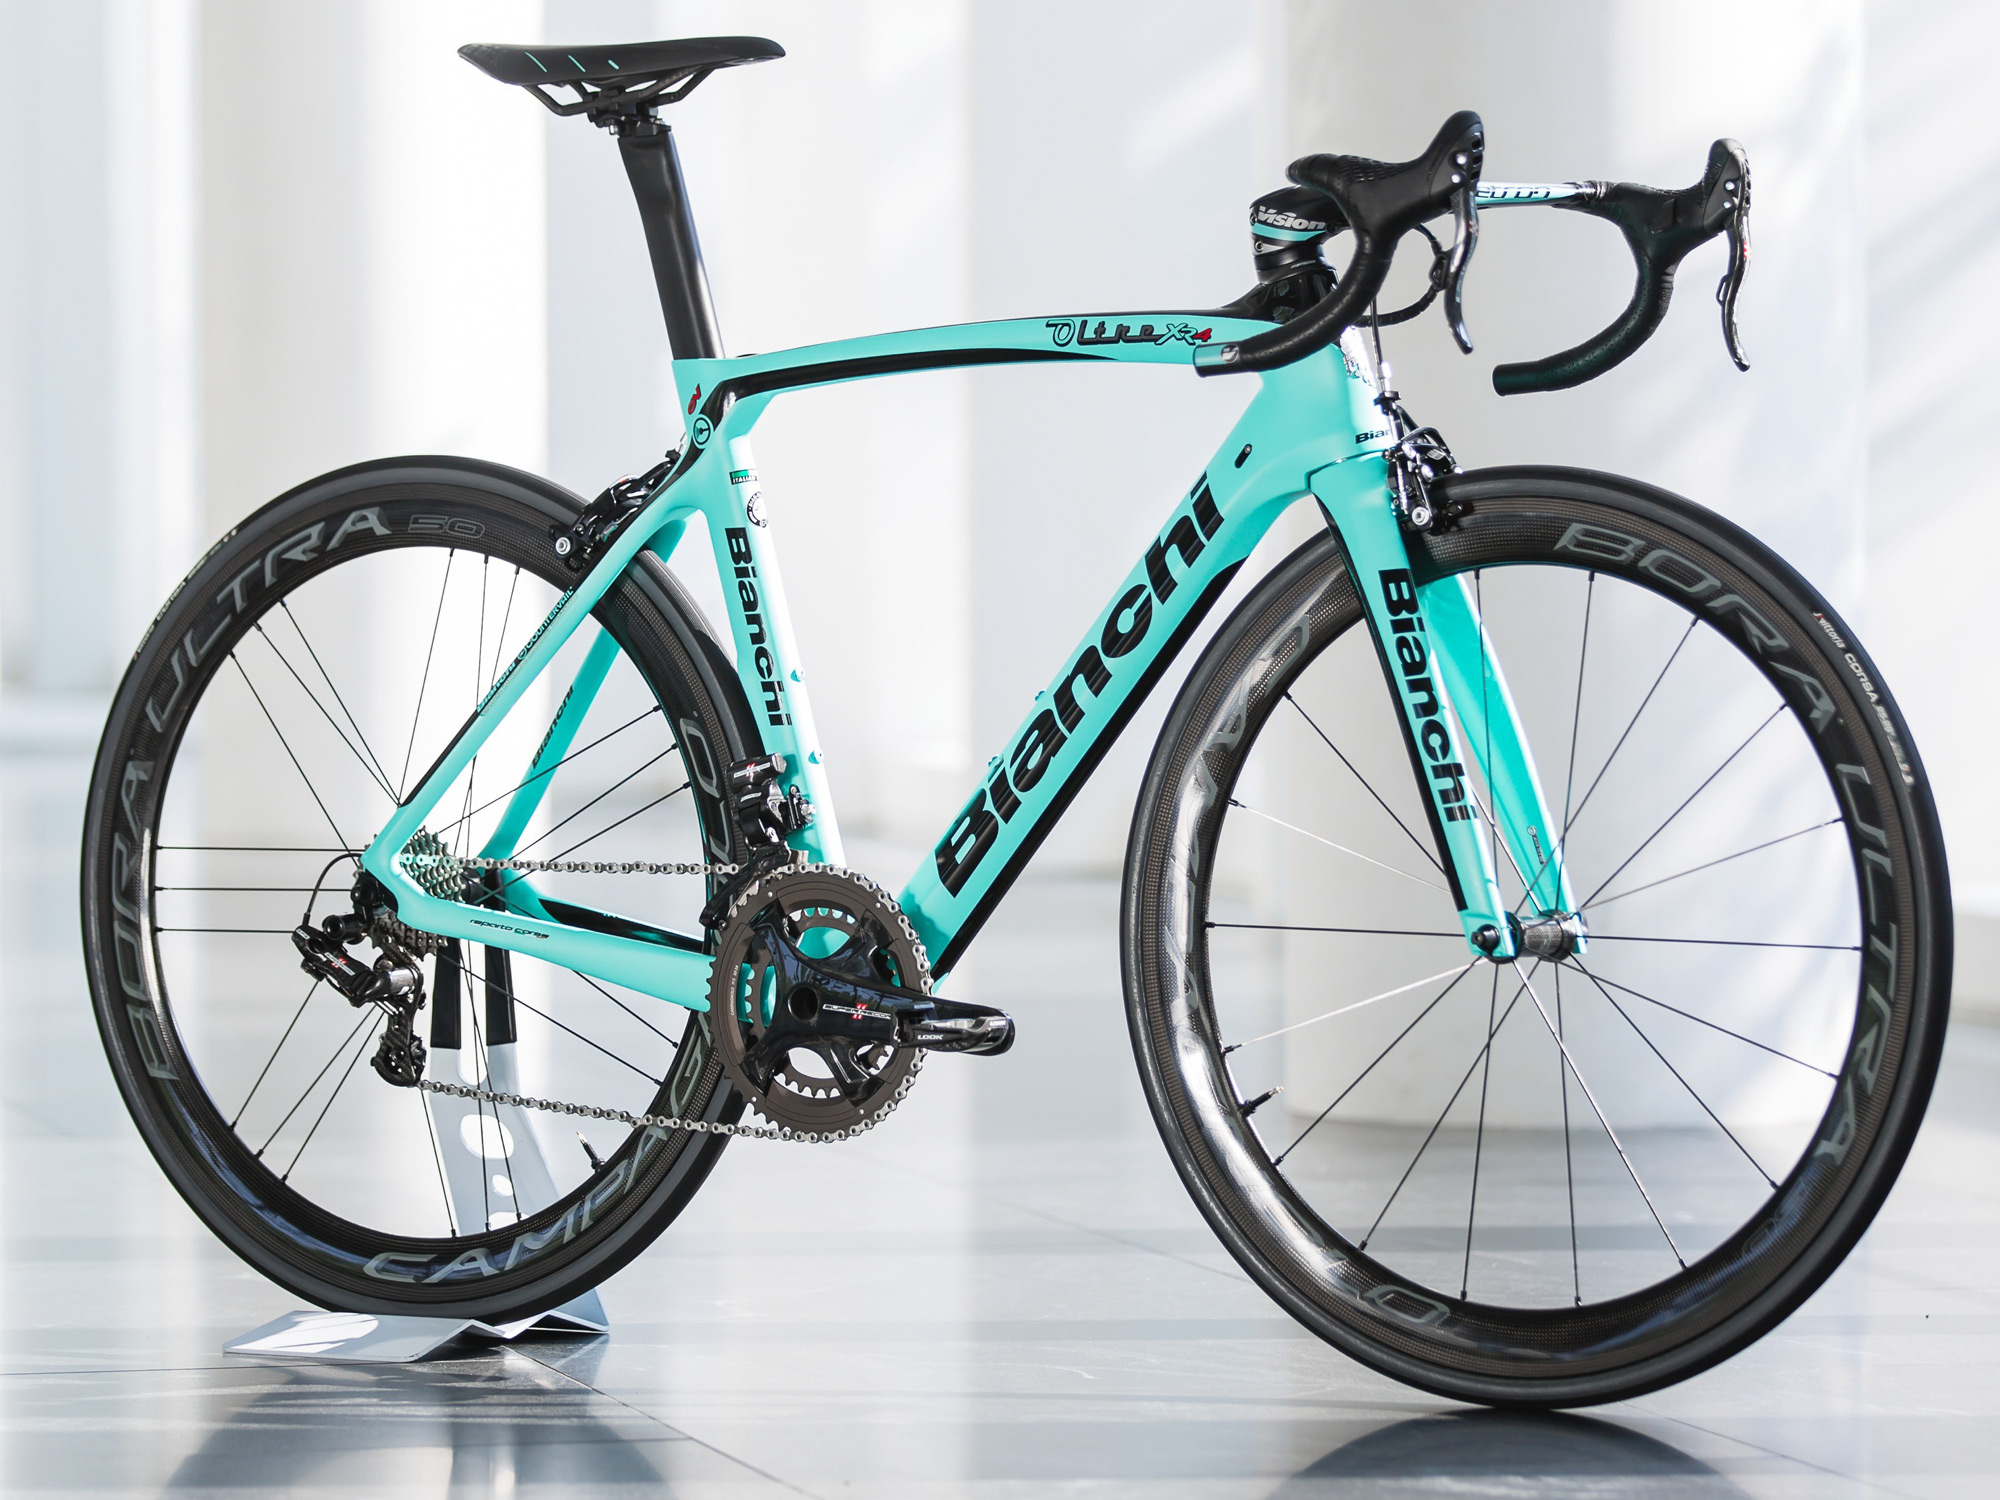 Bianchi smooths the road with Countervail equipped aero ...